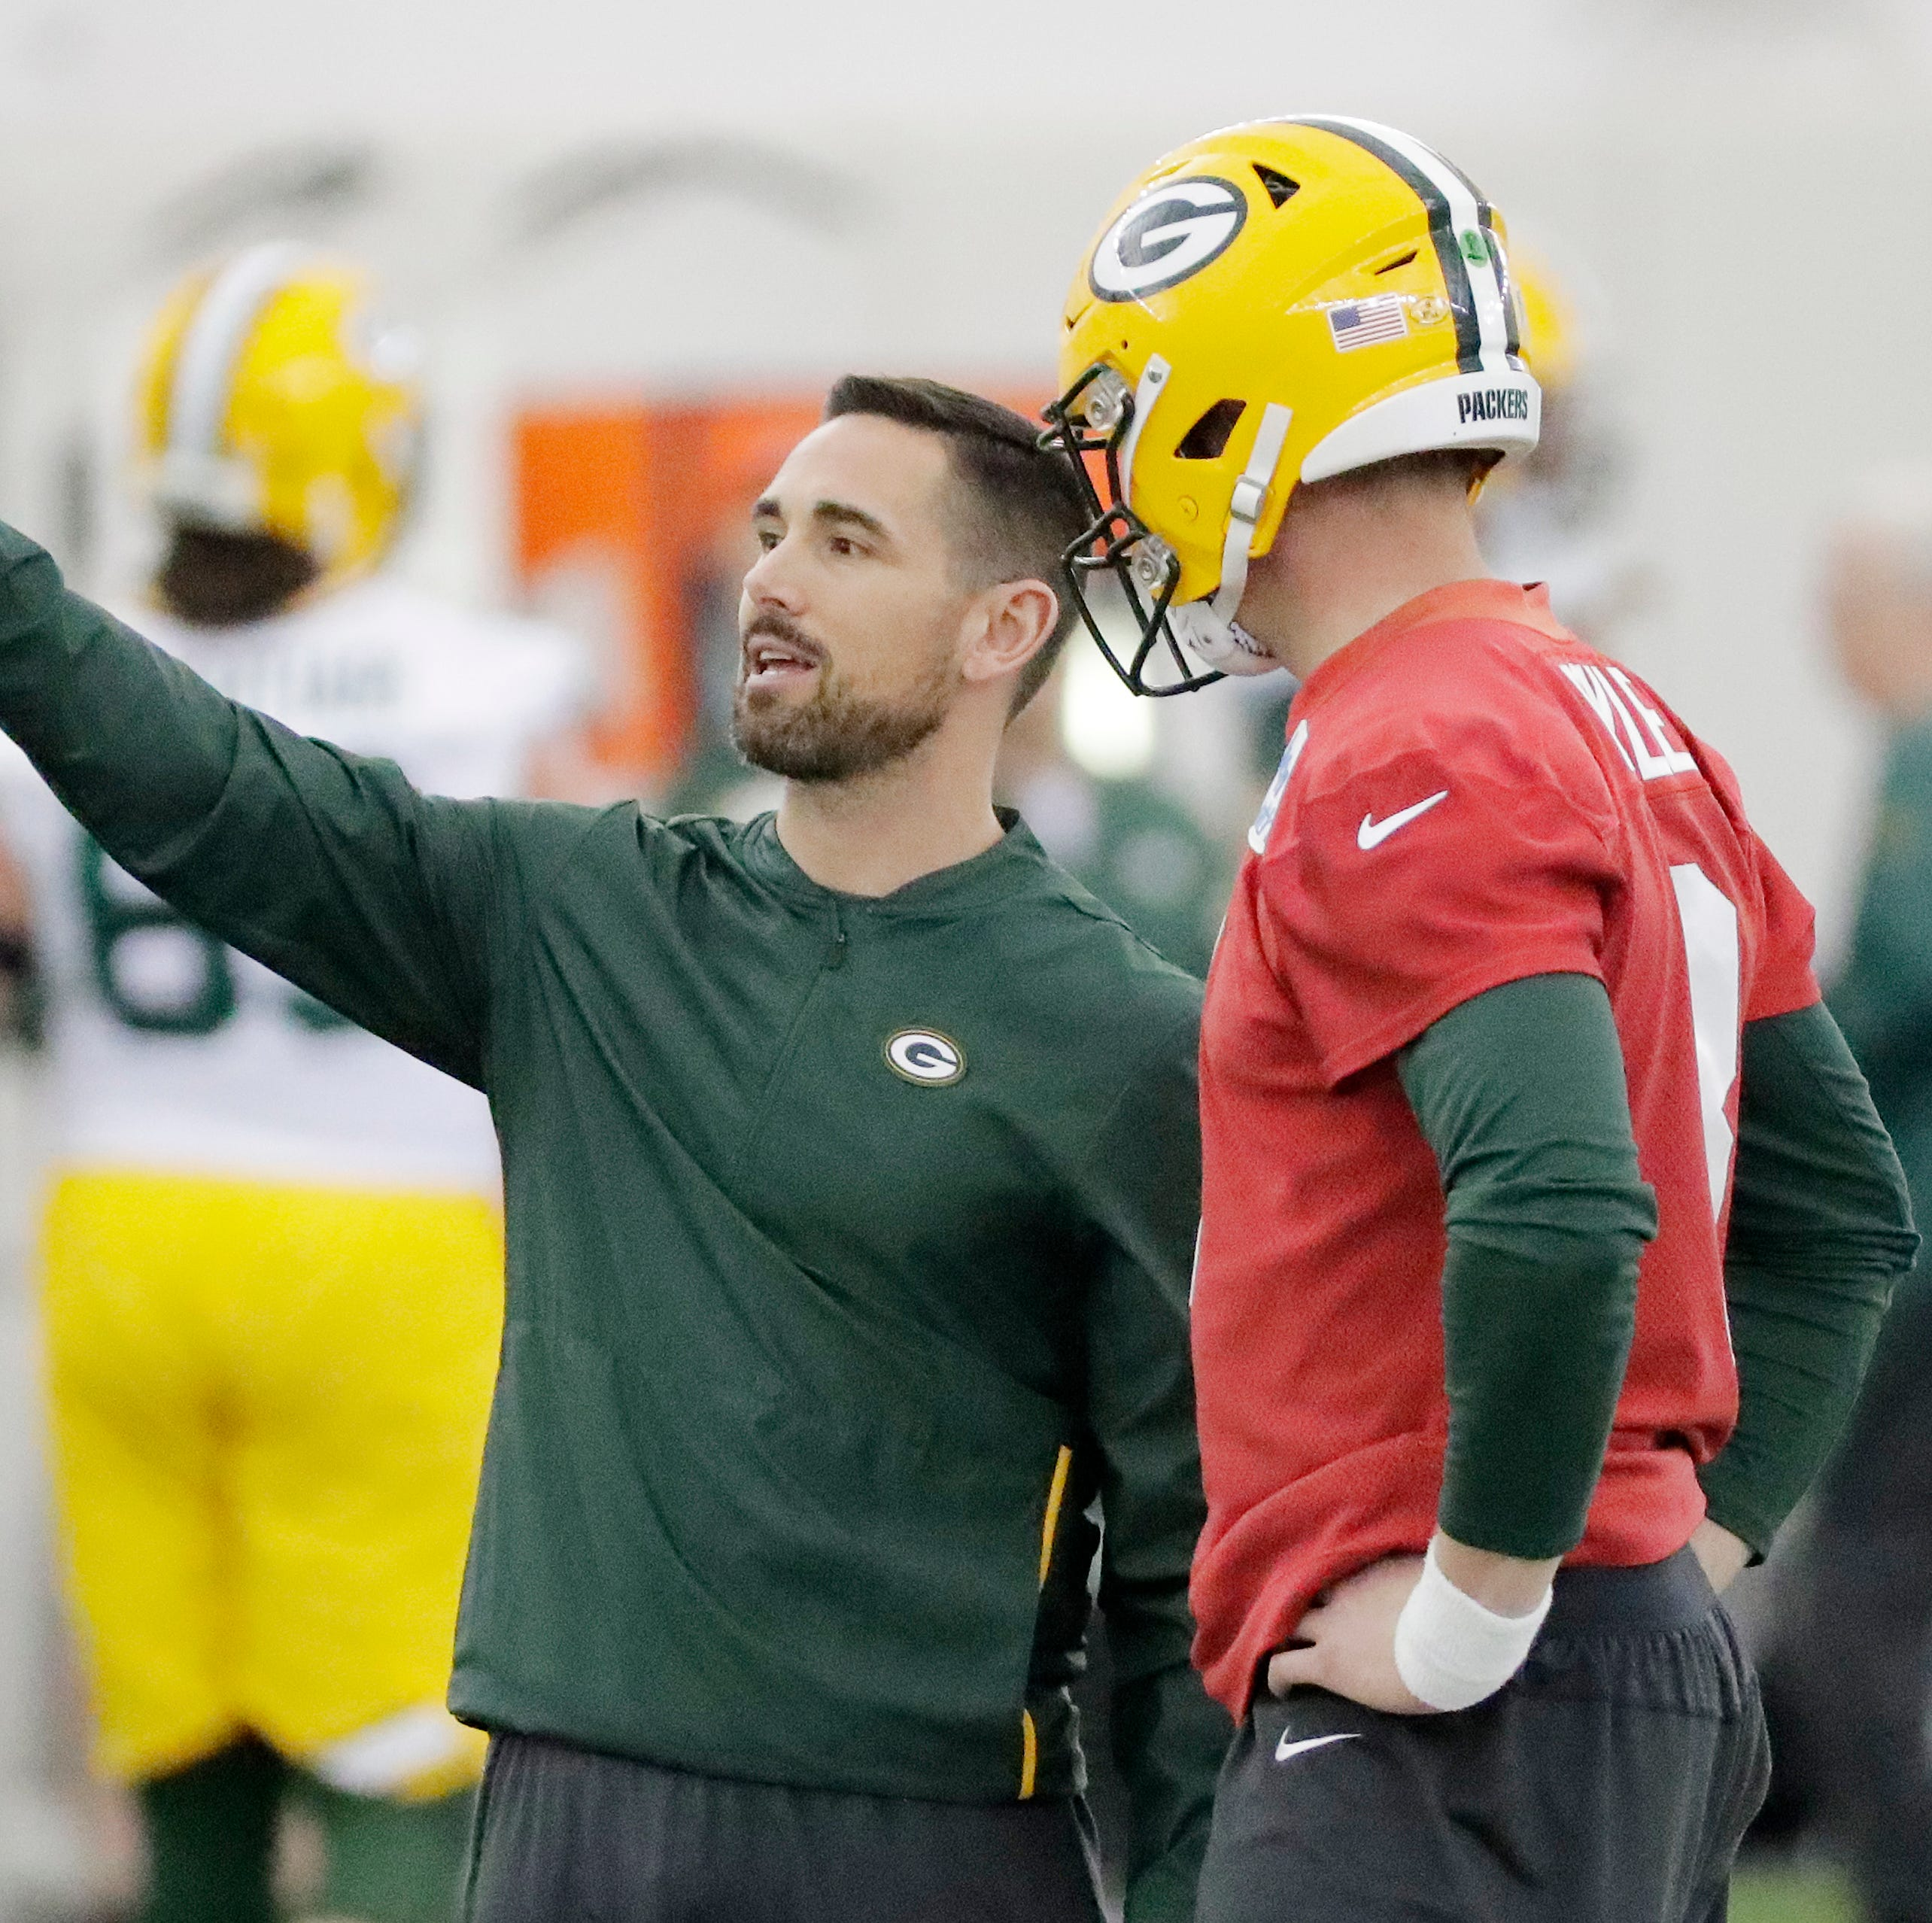 Dougherty: Matt LaFleur's hands-on approach clicking with quarterbacks